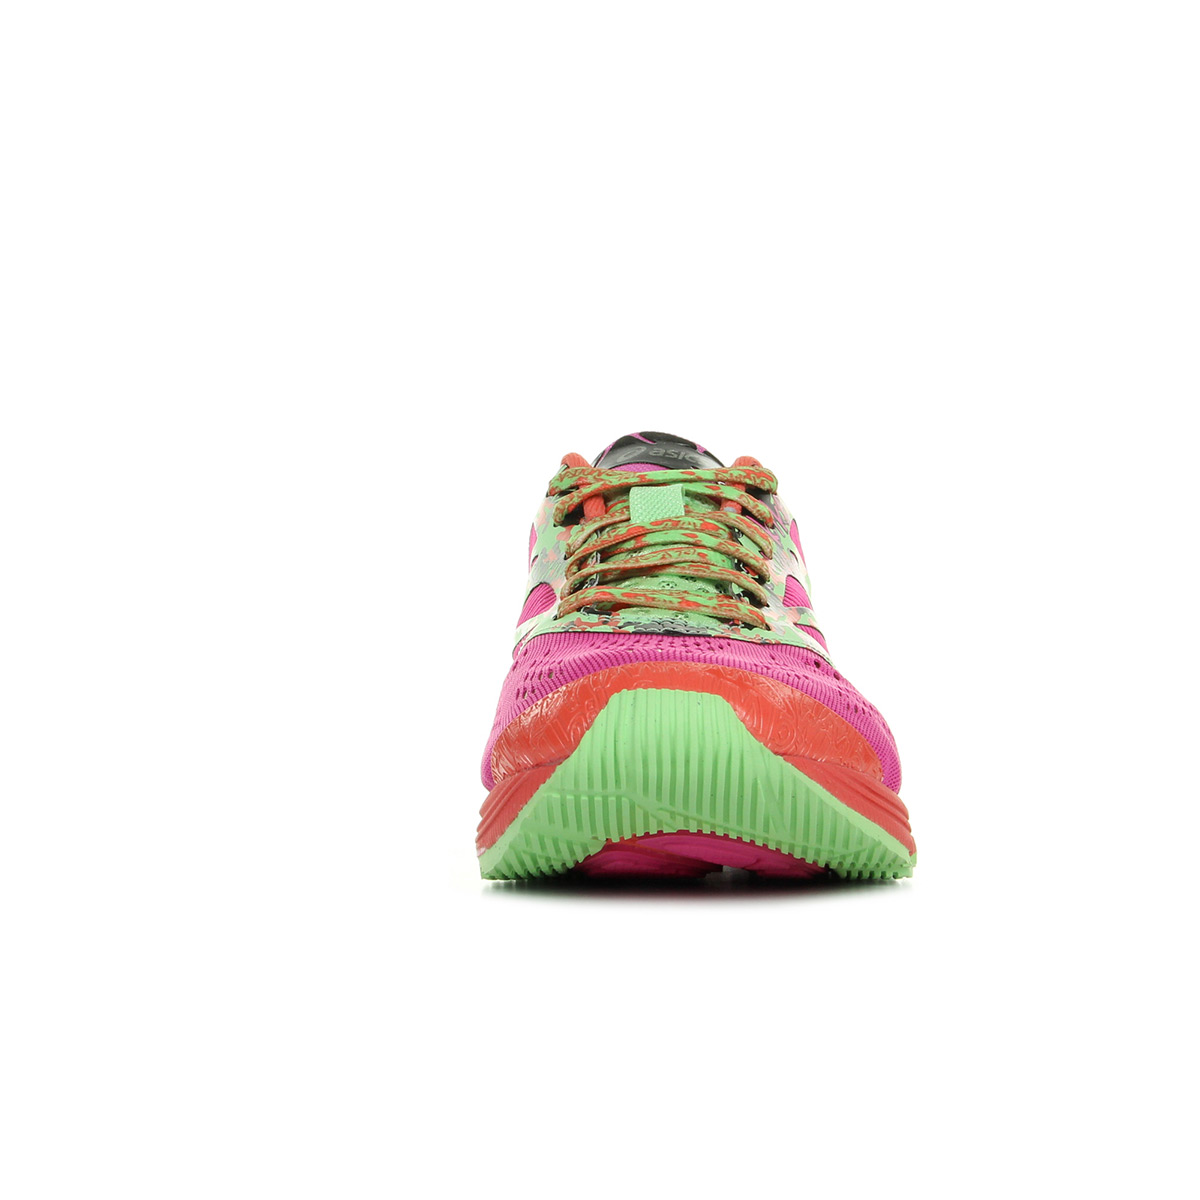 Asics Gel Noosa Tri 10 Coral/Paradise GReen/Hot Pink T580Q3168, Running femme